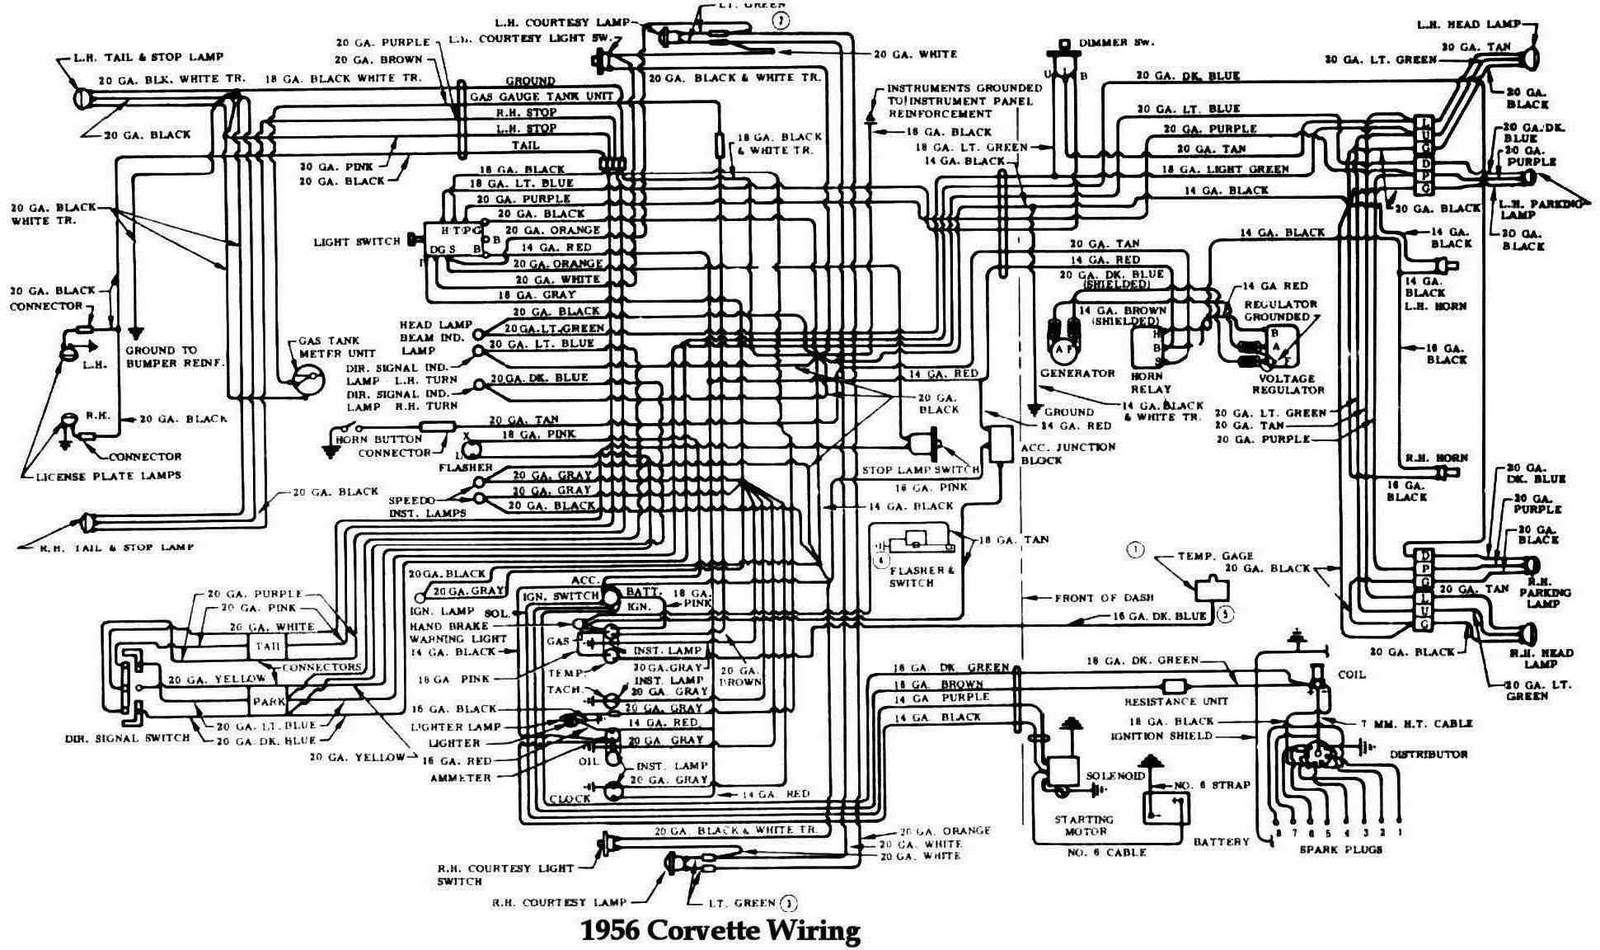 [SCHEMATICS_4ER]  LSRI_3335] C4 Corvette Wiring Diagram Diagram Base Website Wiring Diagram -  ALESSANDRAAPPIANO.IT | 1966 Corvette Wiring Diagram Pdf |  | Diagram DataBase